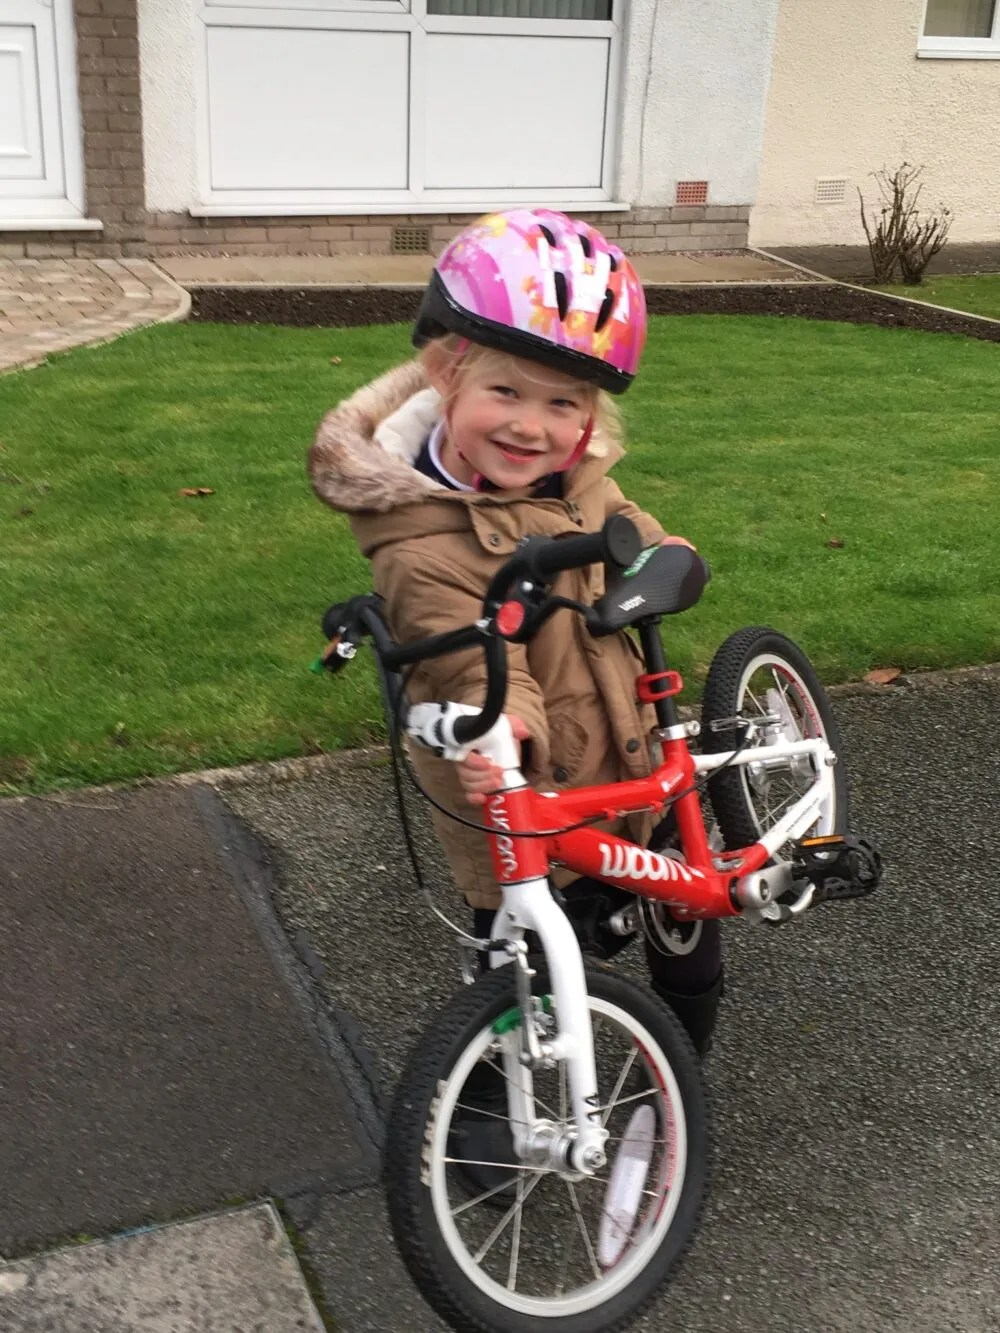 76606f4fa56 The best kids bikes 2019 - choose the right children's bike - Cycle Sprog